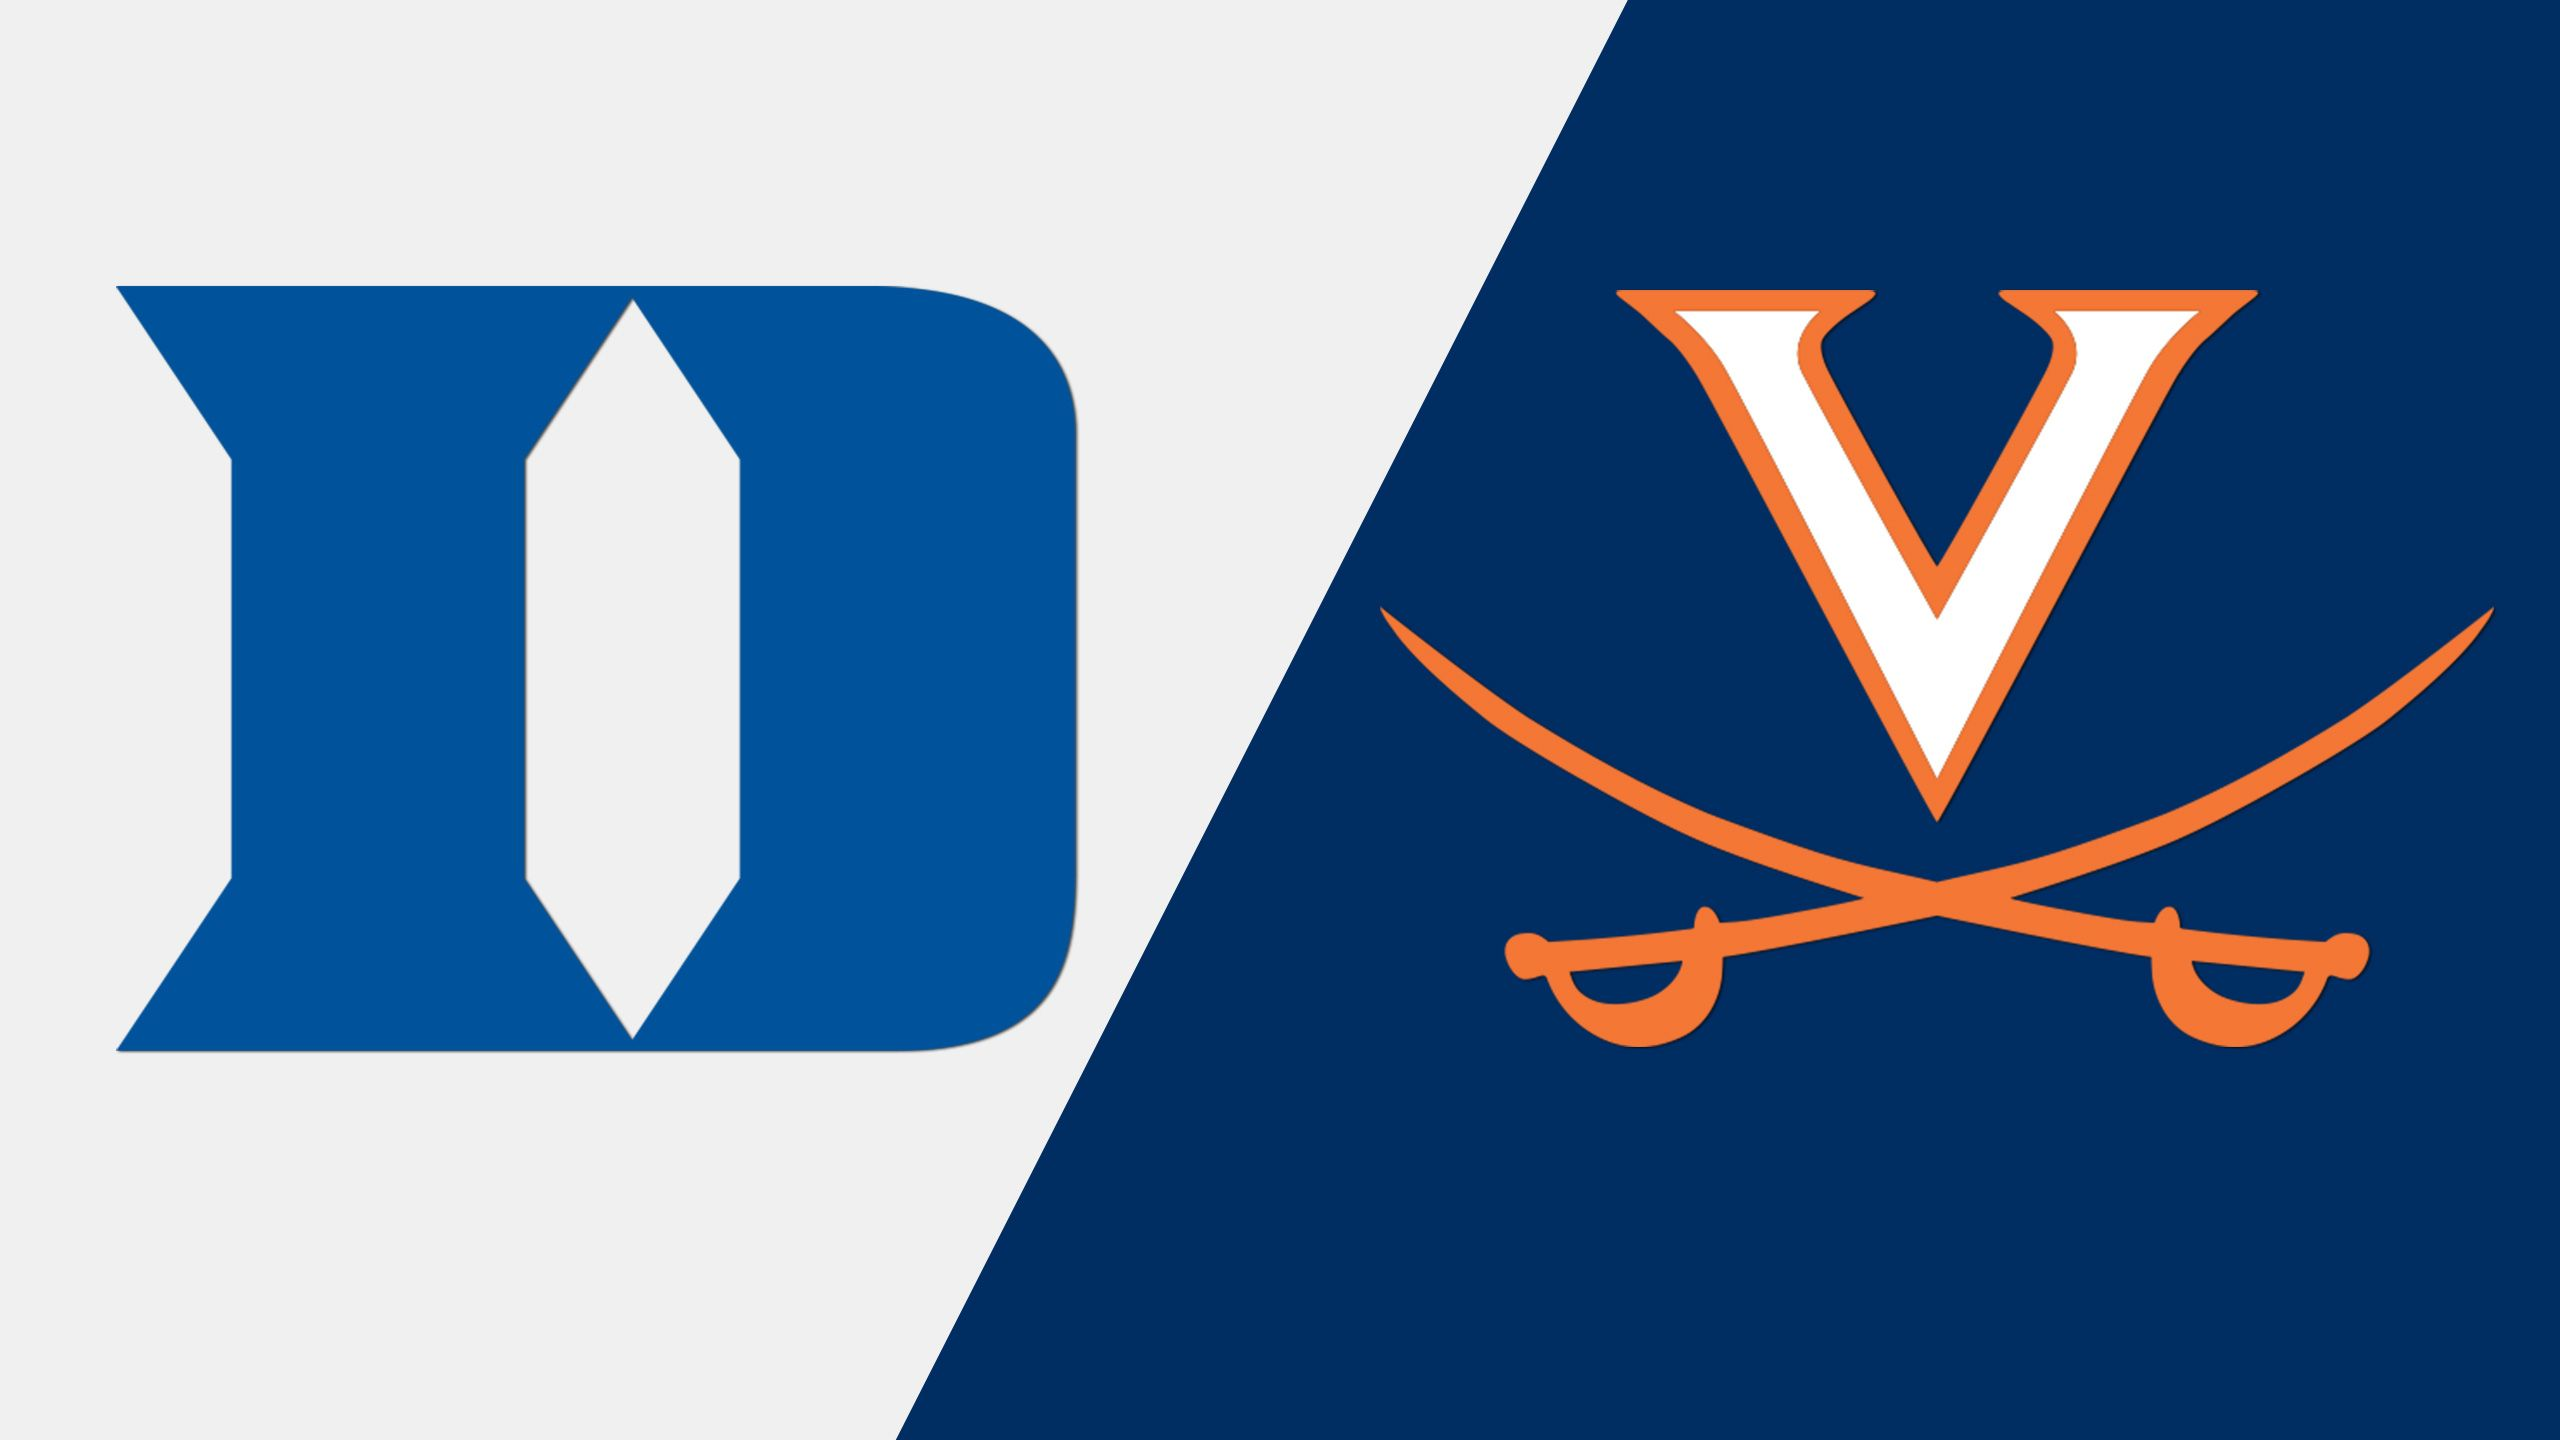 #5 Duke vs. #12 Virginia (M Lacrosse)